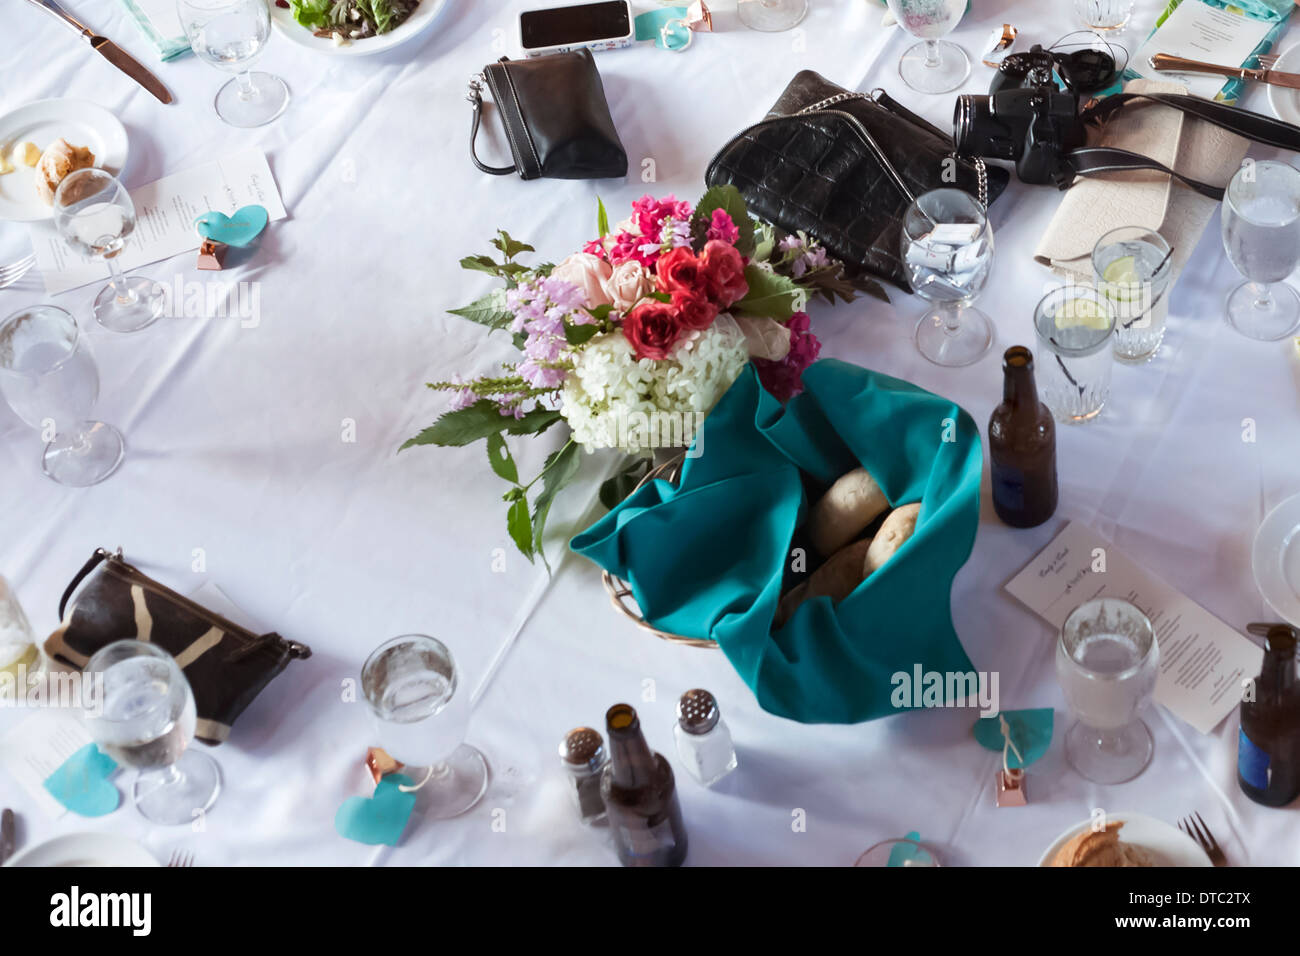 Still life of wedding reception table with drinks and purses - Stock Image